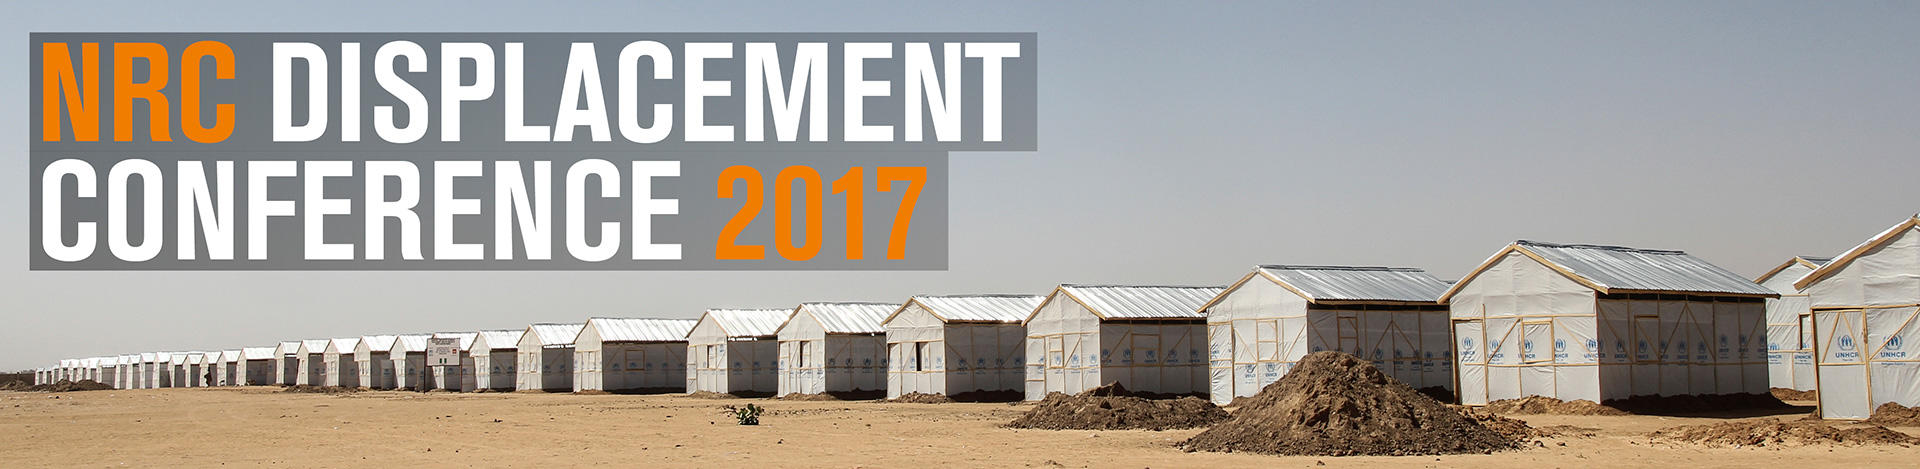 NRCs displacement conference 2017